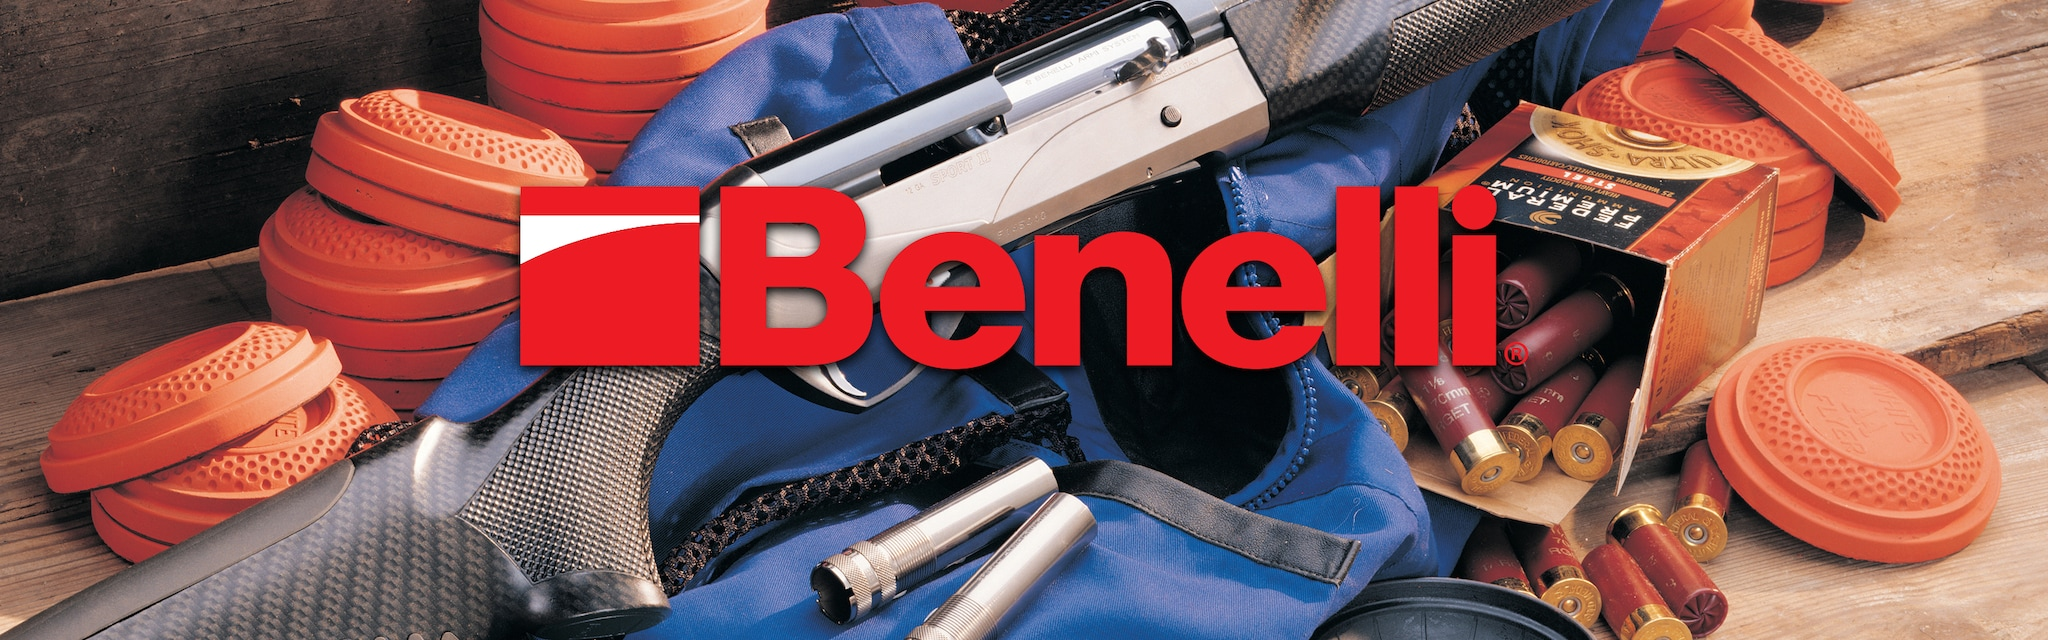 Benelli Brand Page